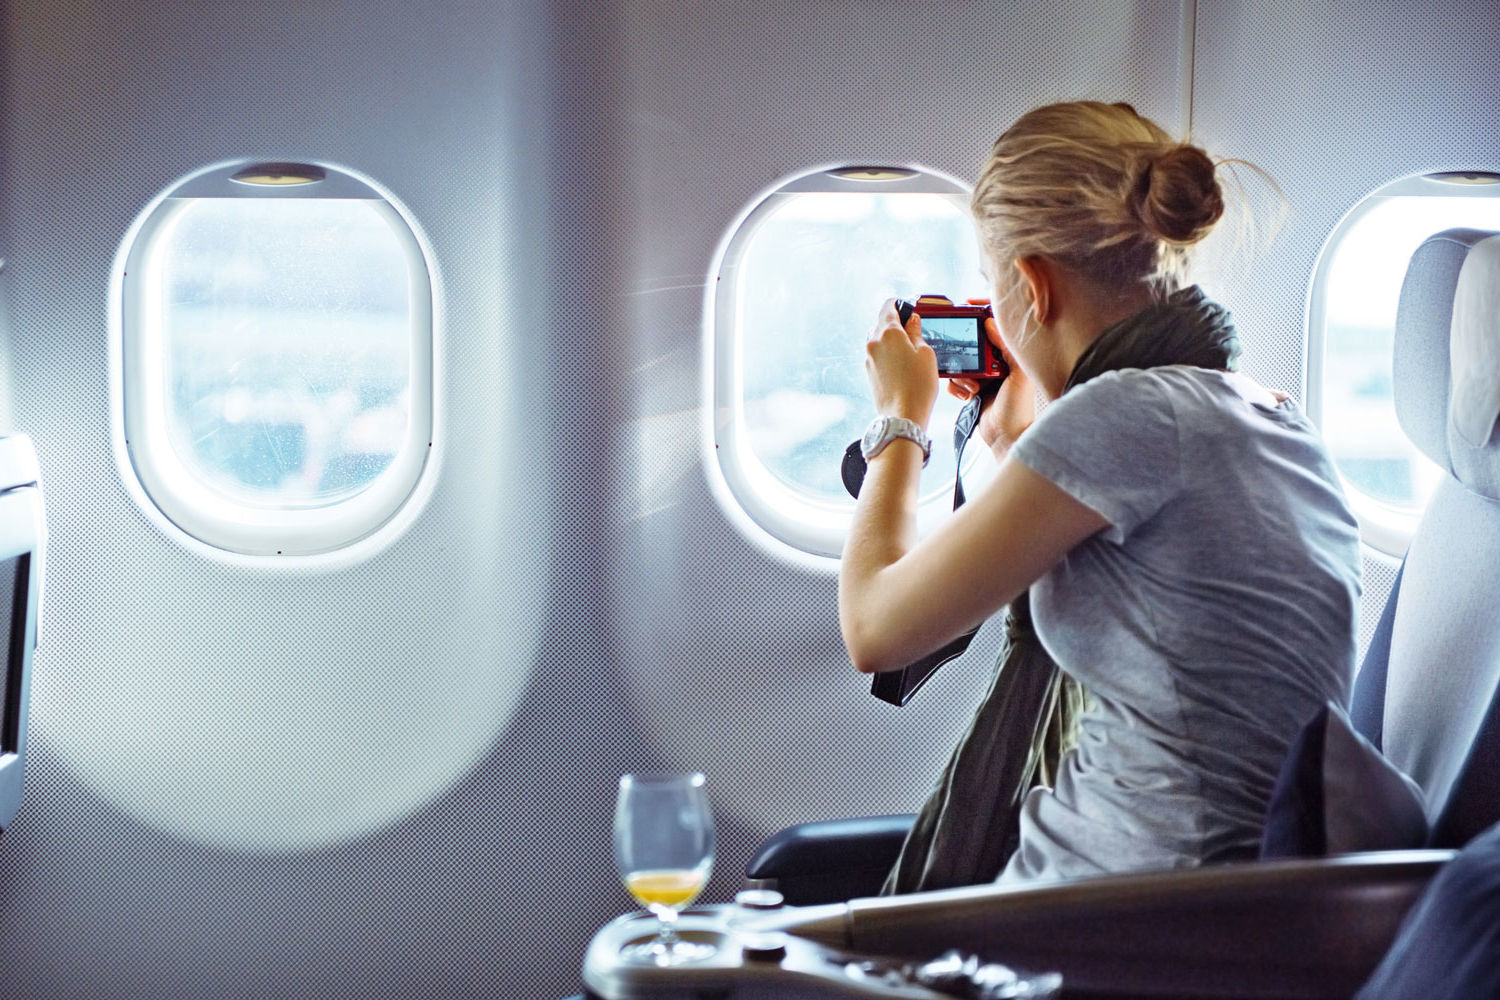 16 Mistakes Every First-time Flier Makes